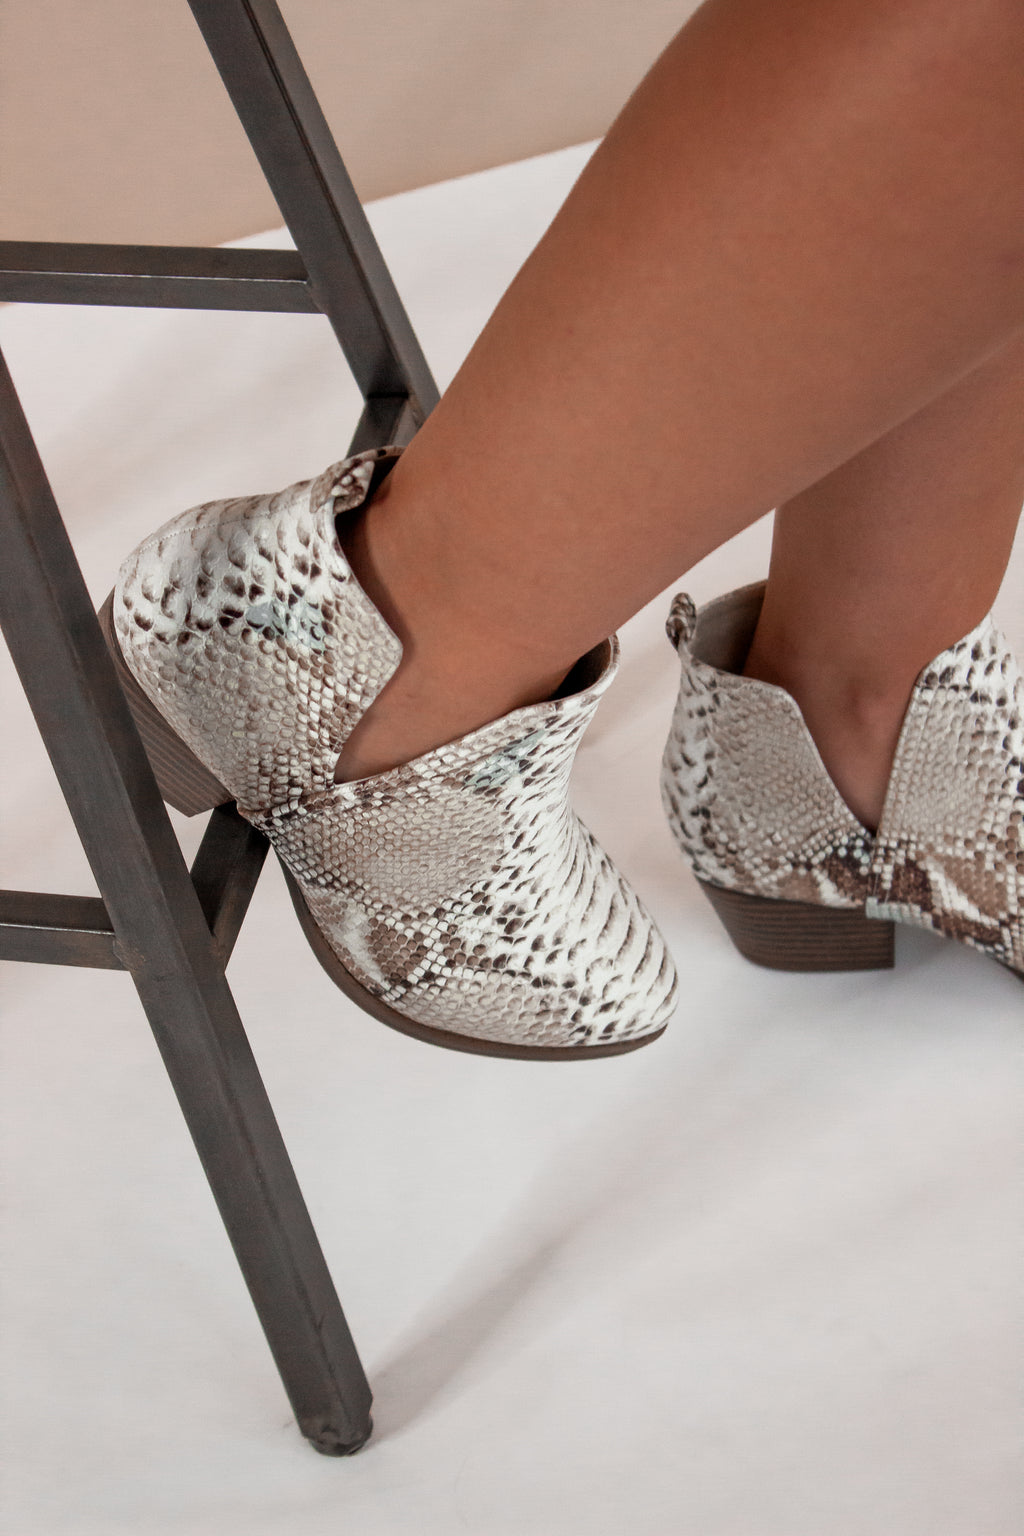 Chinese Laundry: Cherish Bootie in Snake